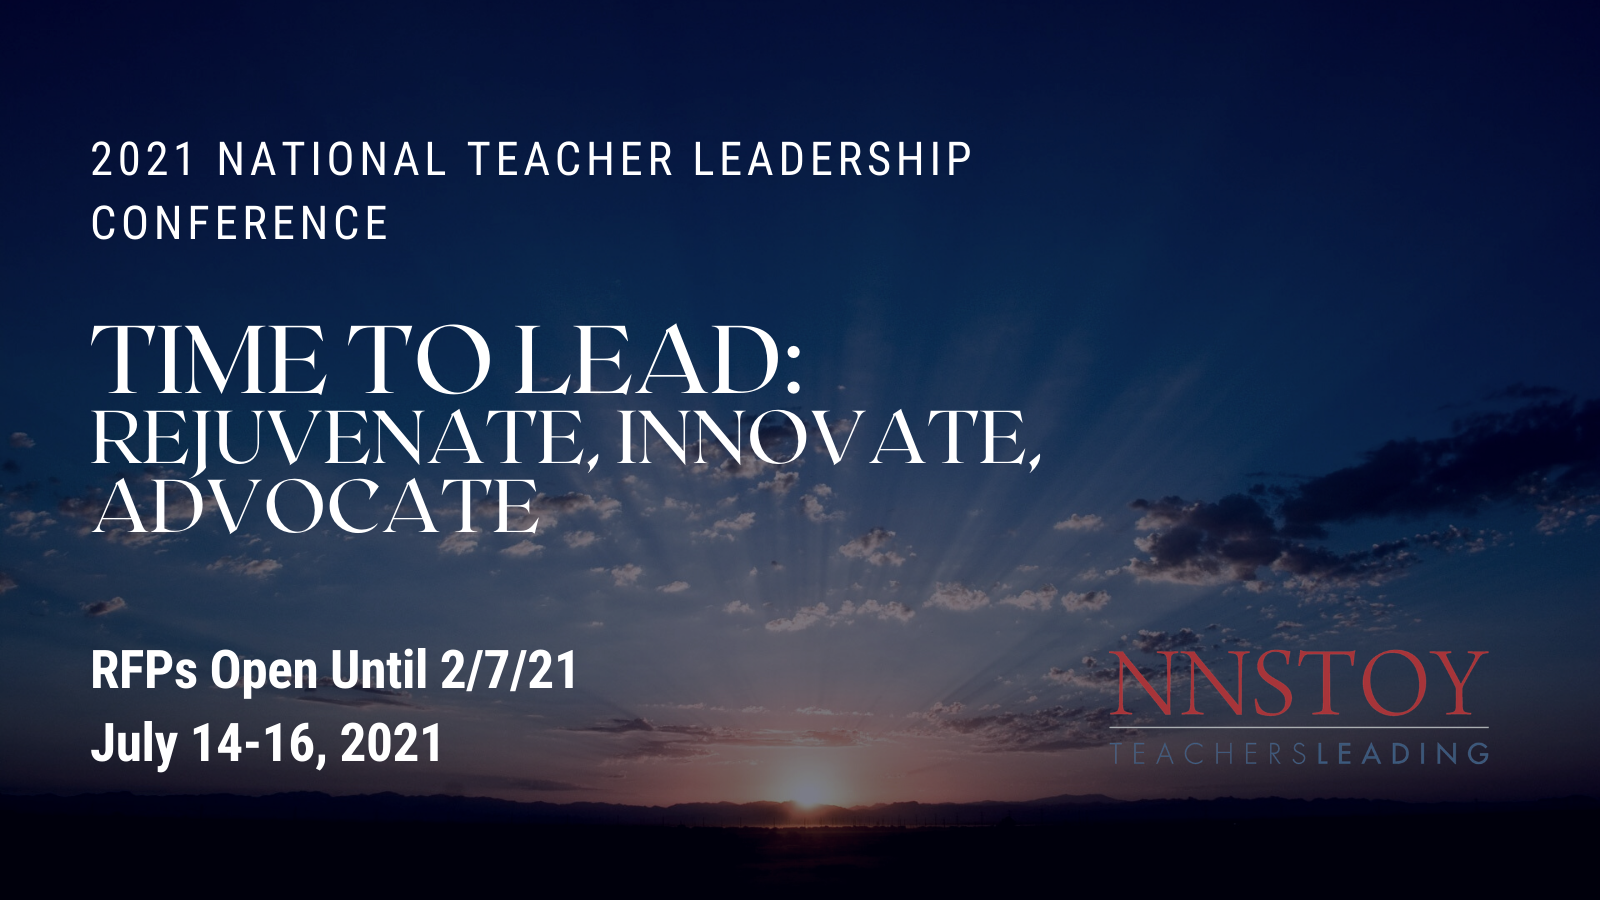 RFP Window Open for the 2021 NNSTOY Conference